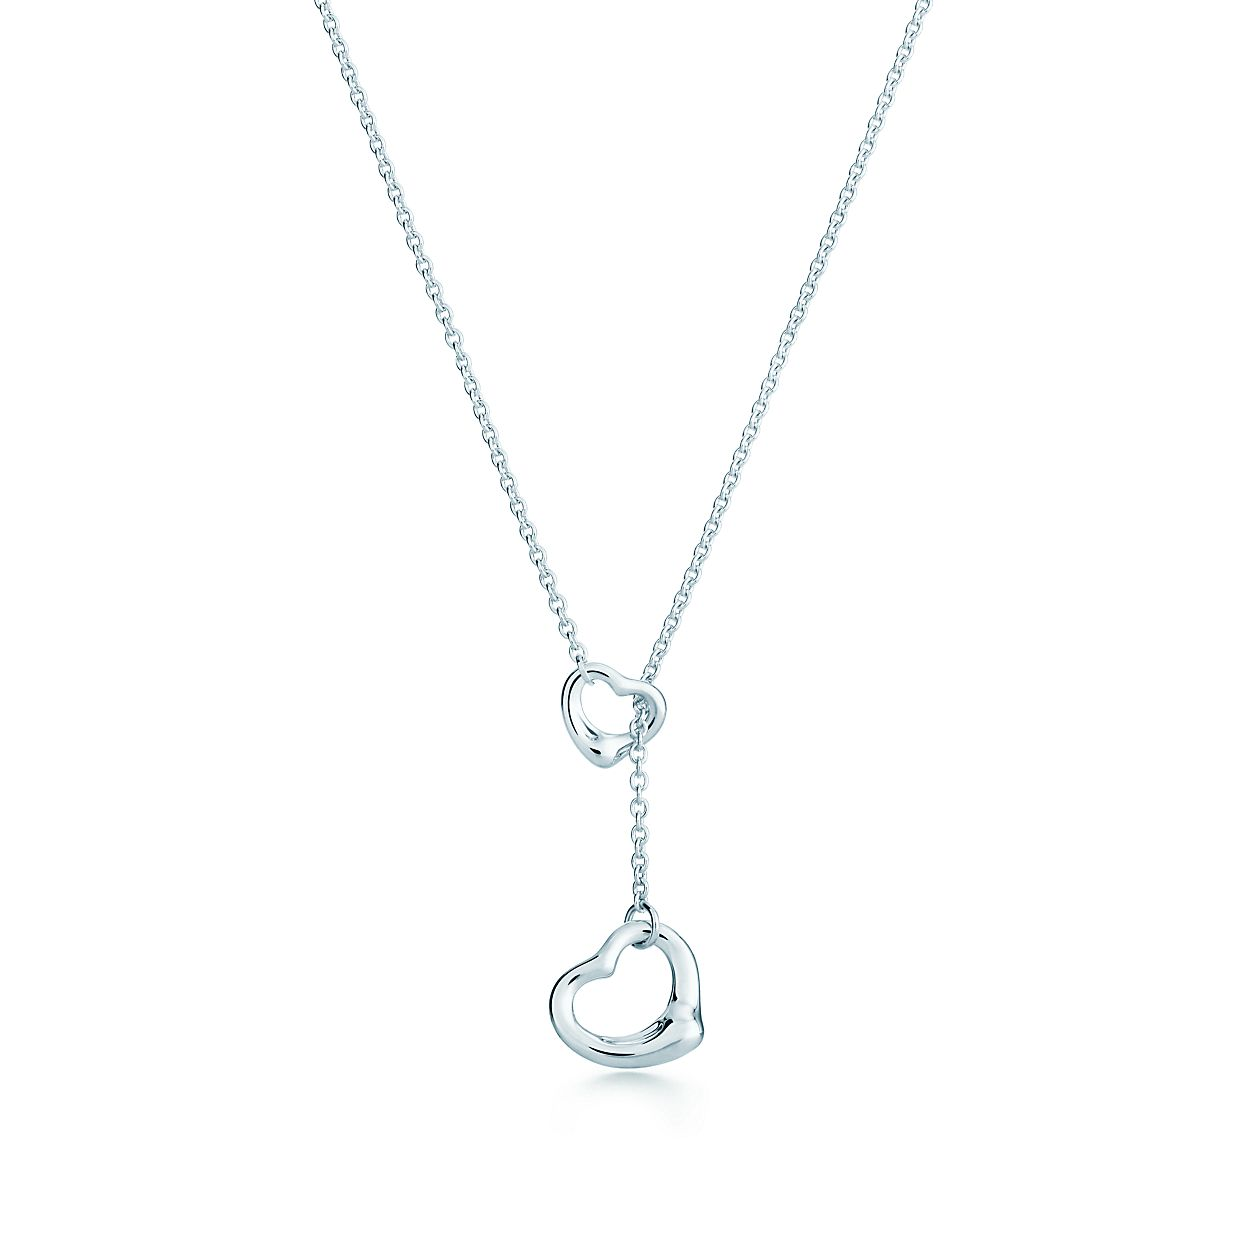 Atlas lariat in sterling silver Tiffany & Co. NHfub5hzl